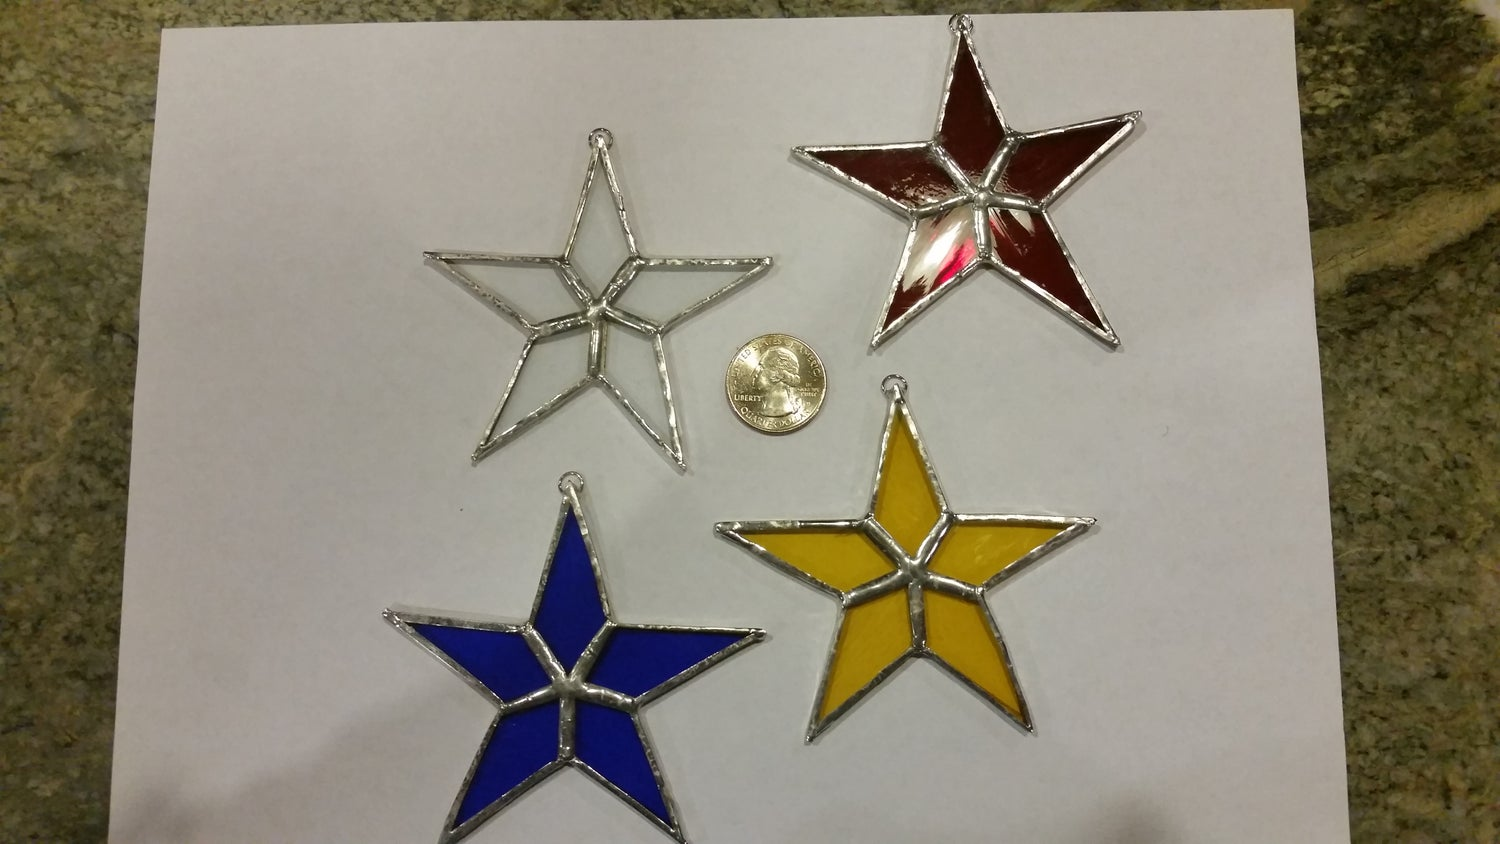 Image of Mini Star Set- stained glass